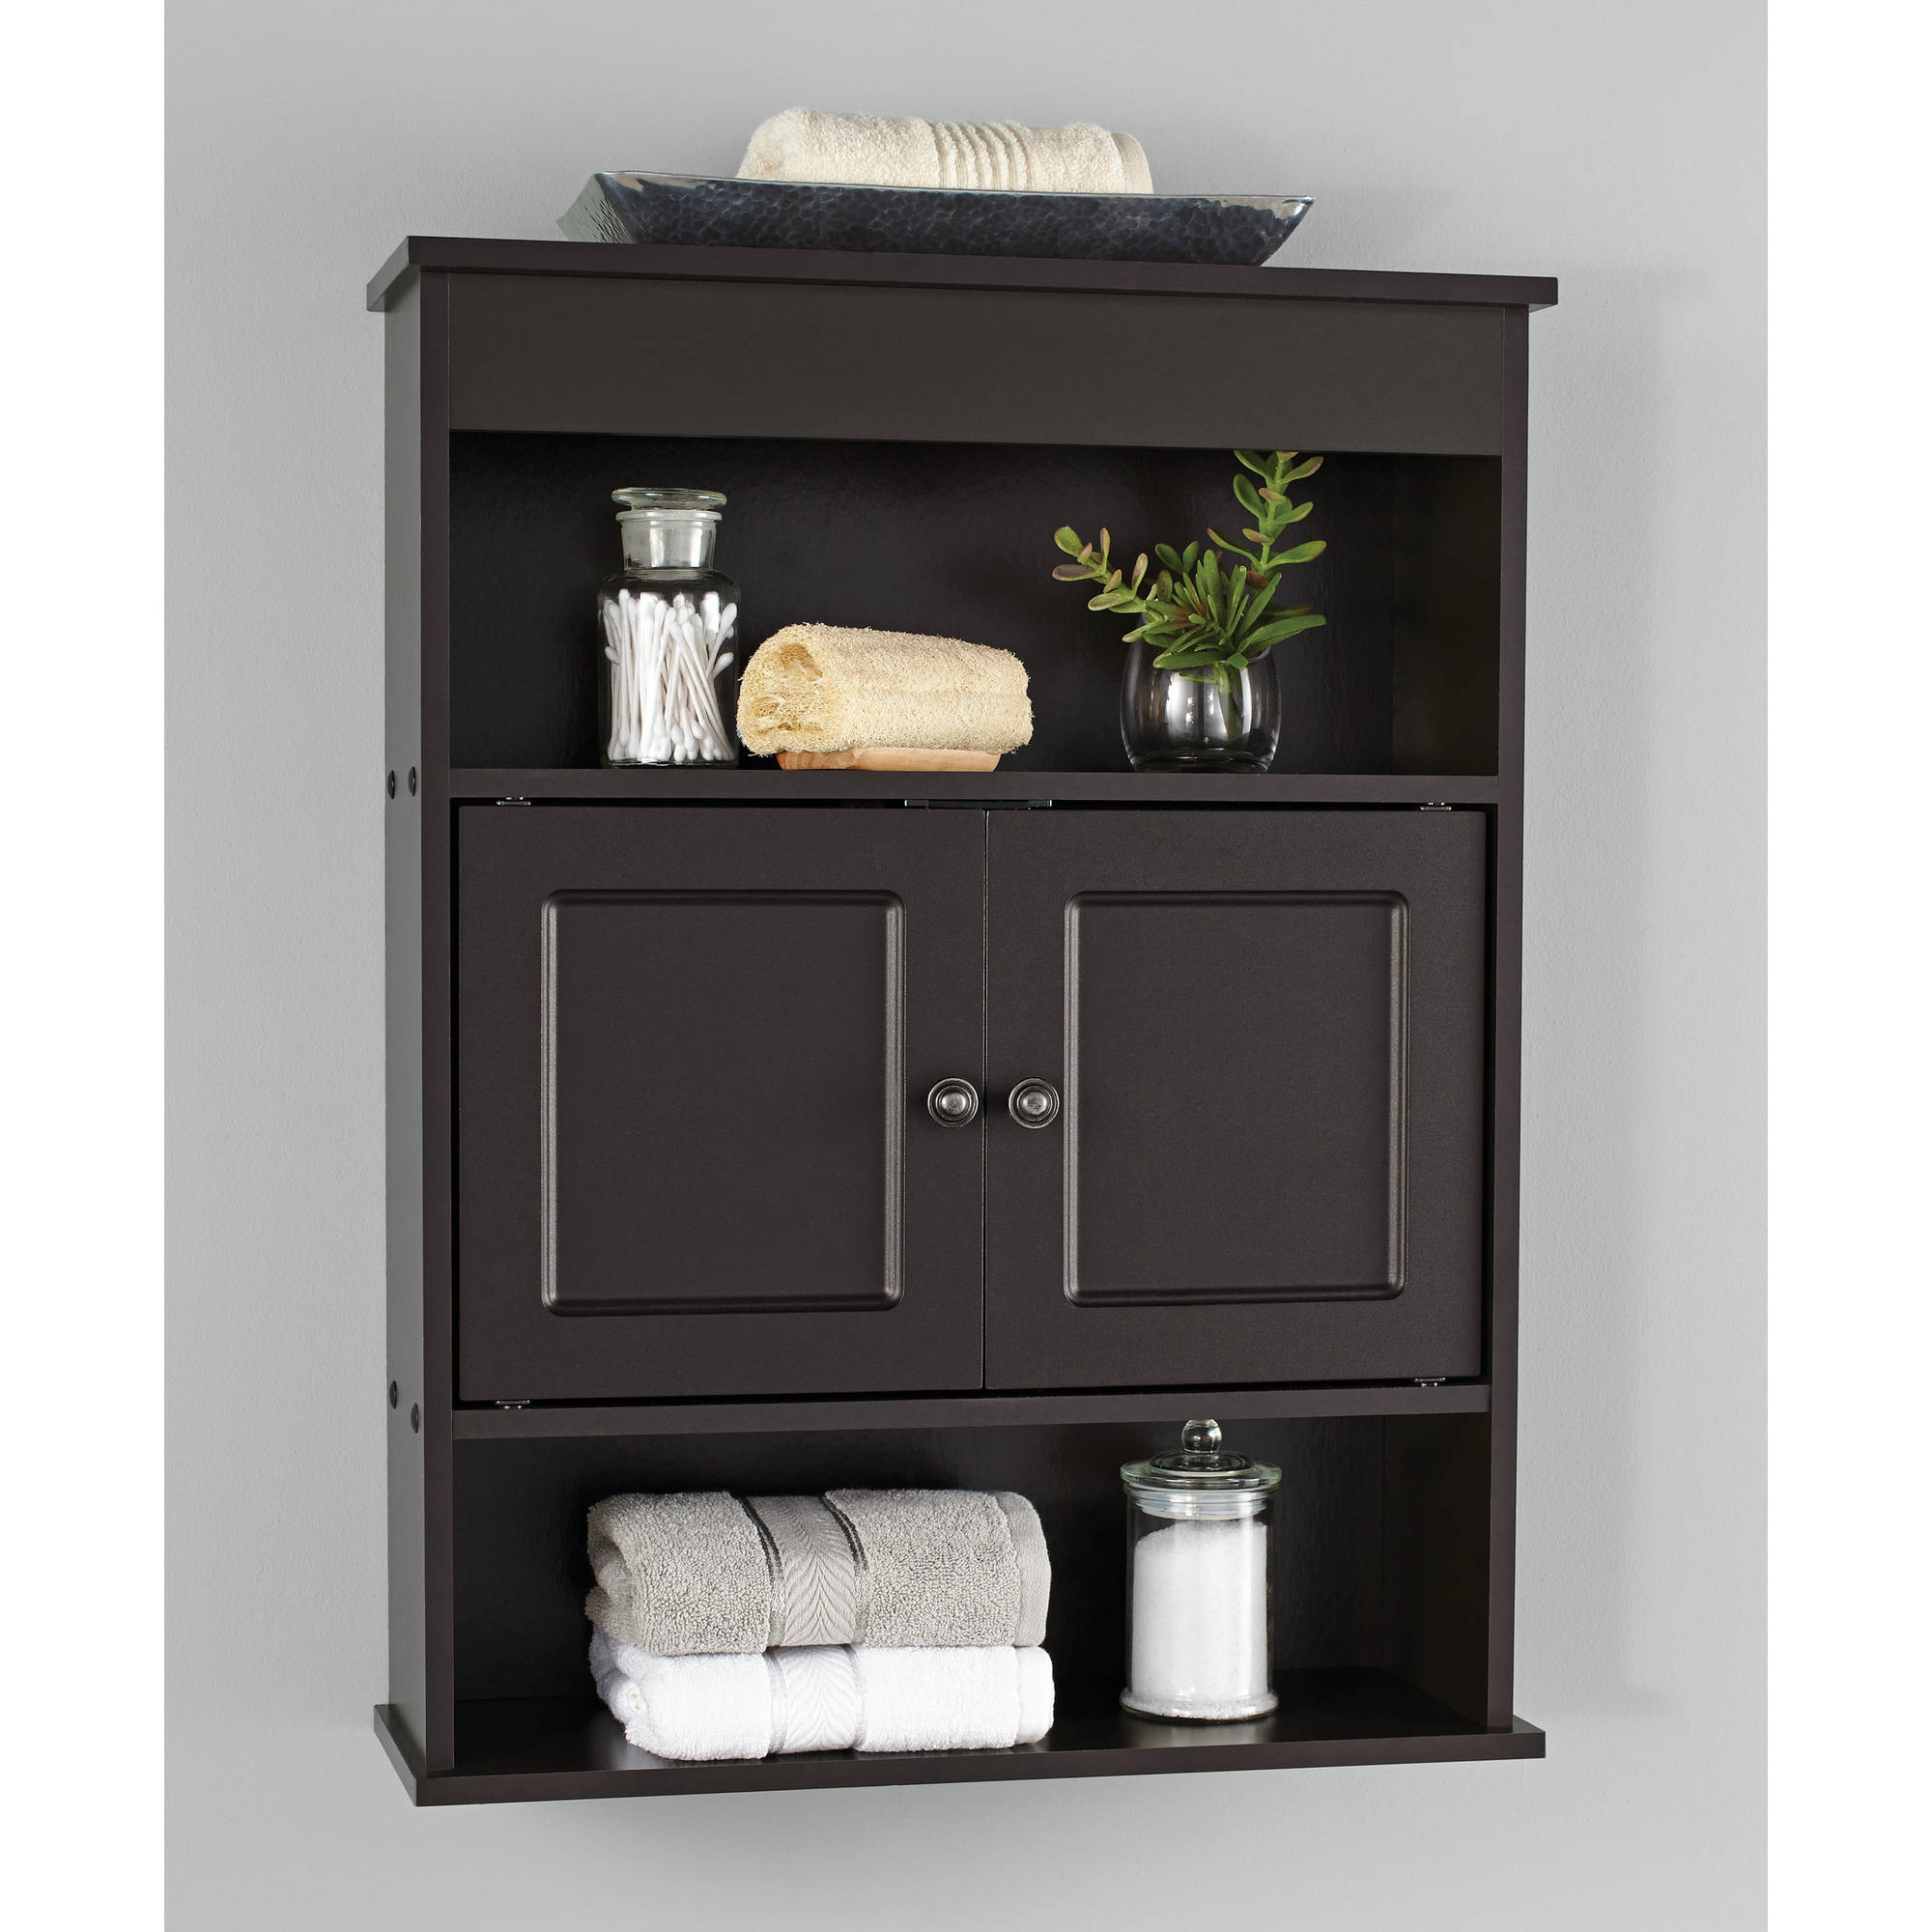 chapter bathroom wall cabinet, espresso - walmart